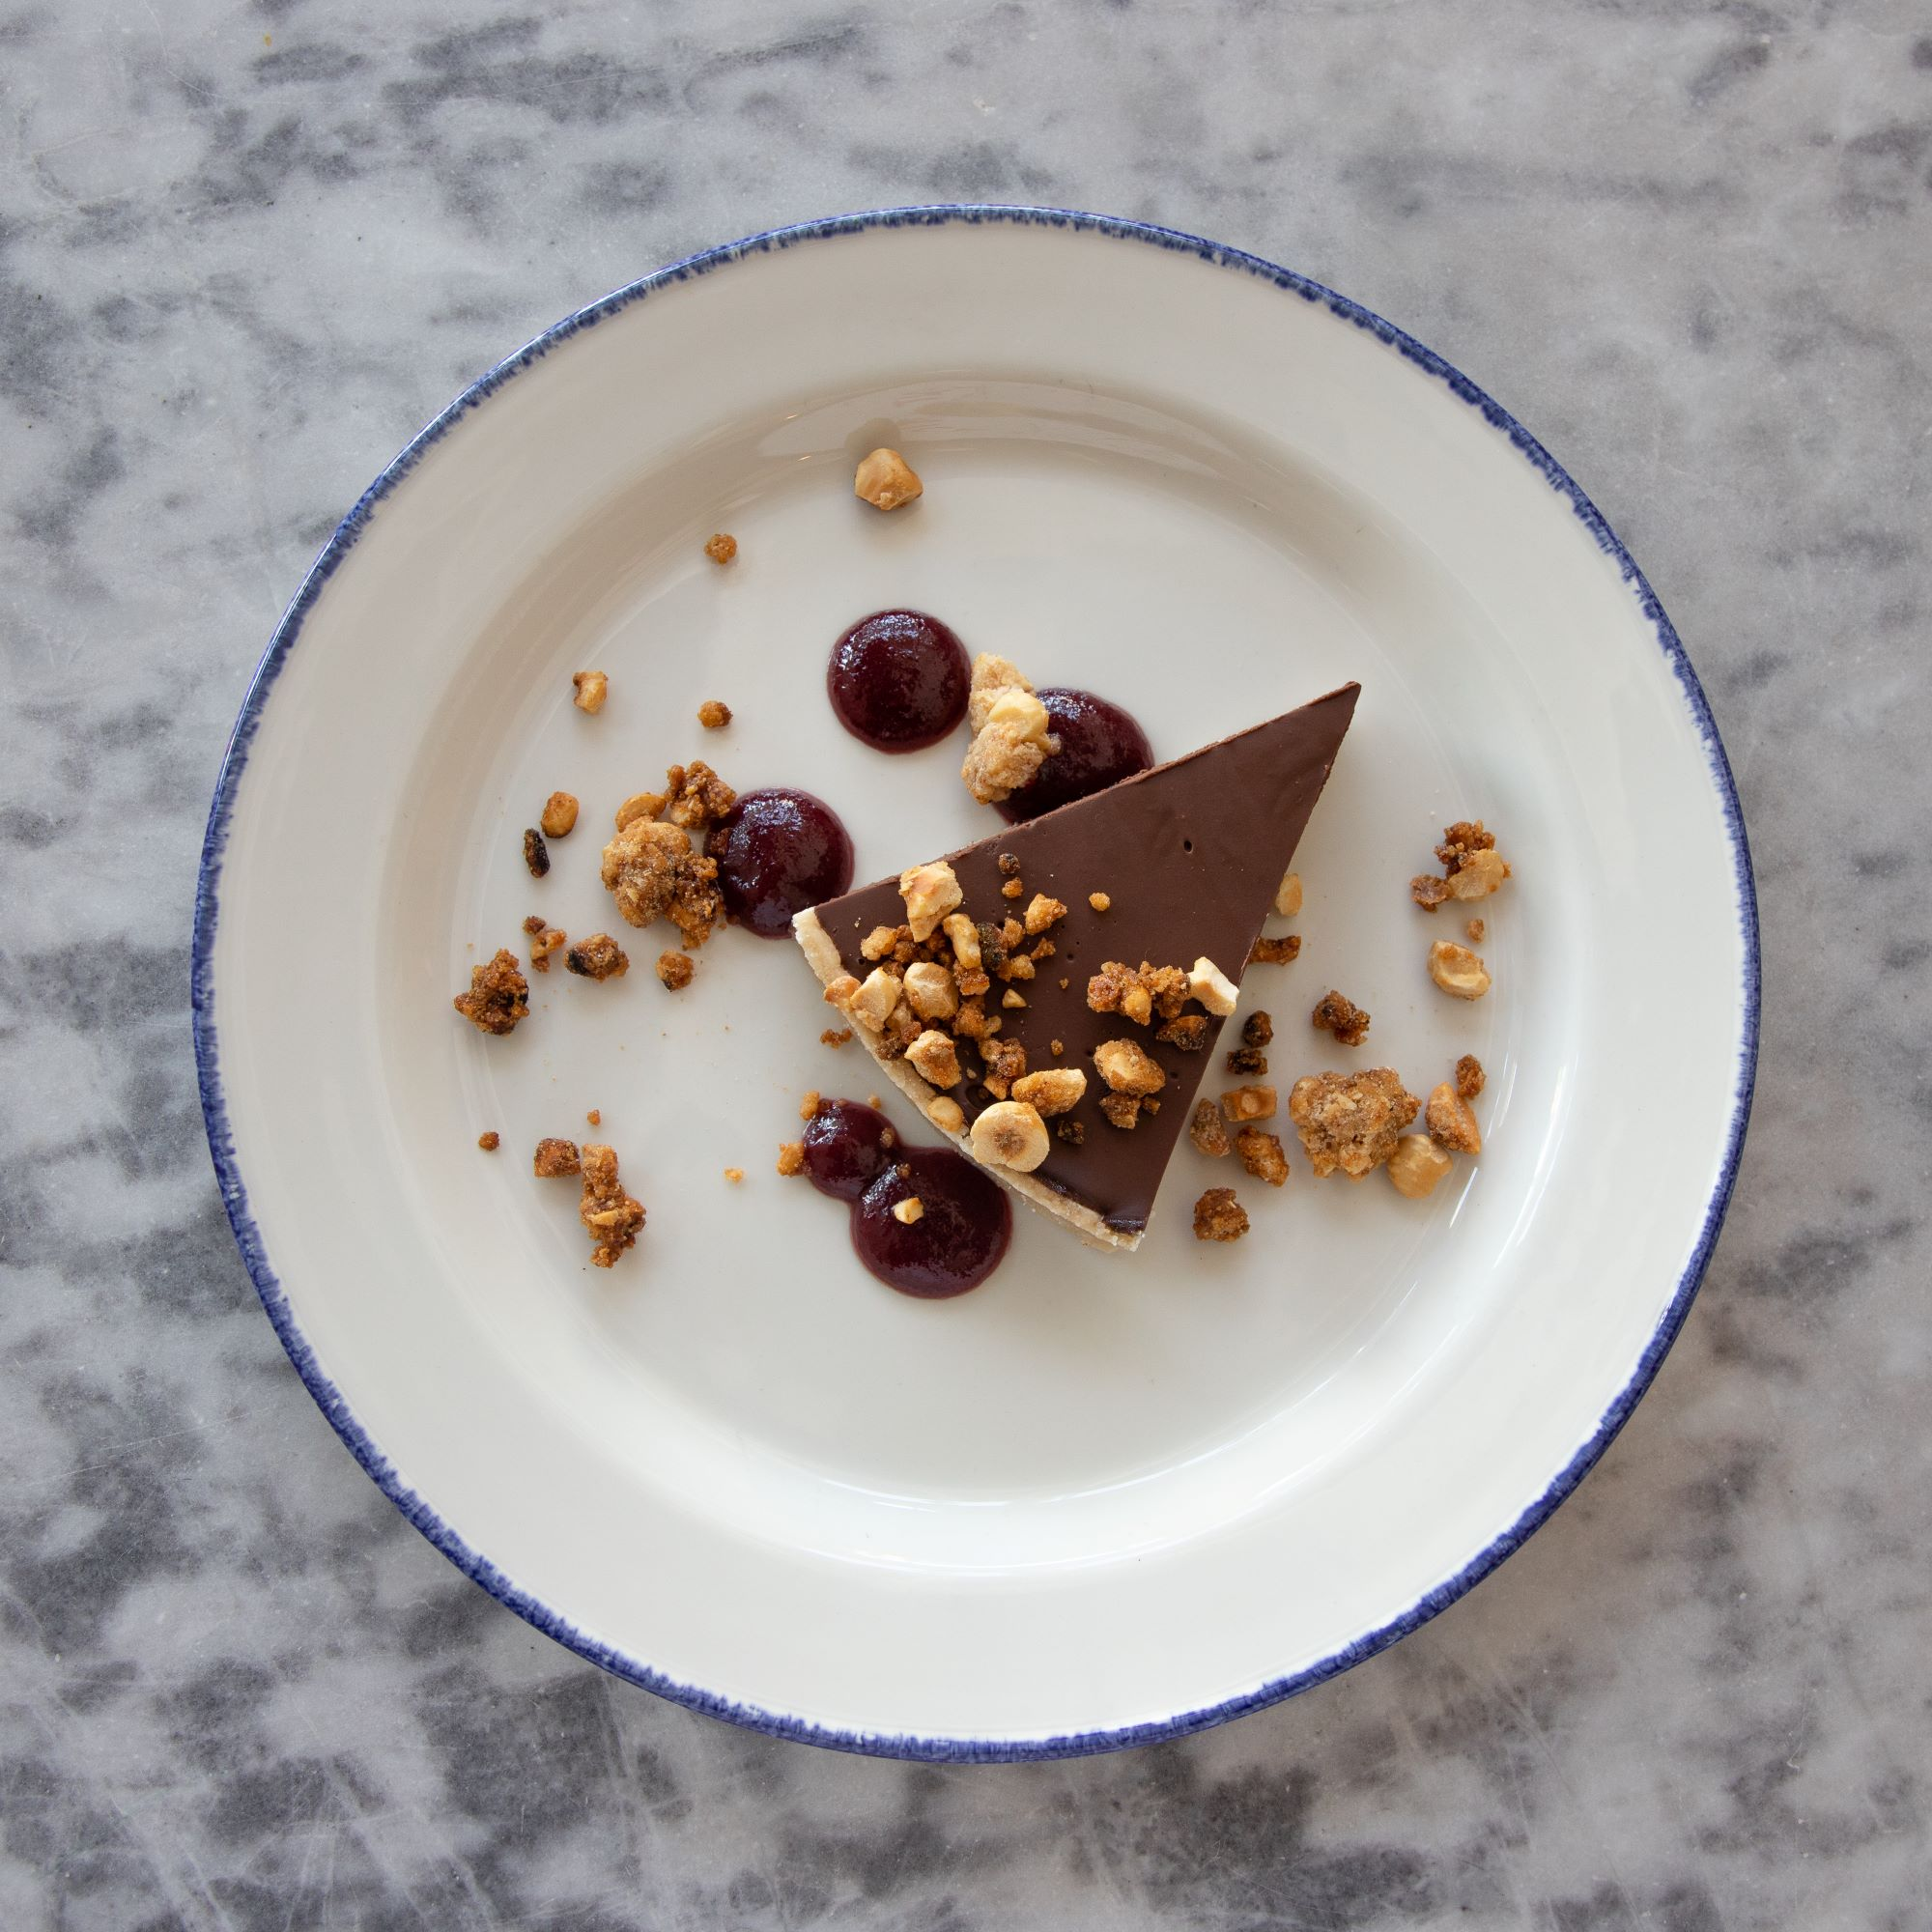 sour cherry coulis, candied hazelnuts   Vegan